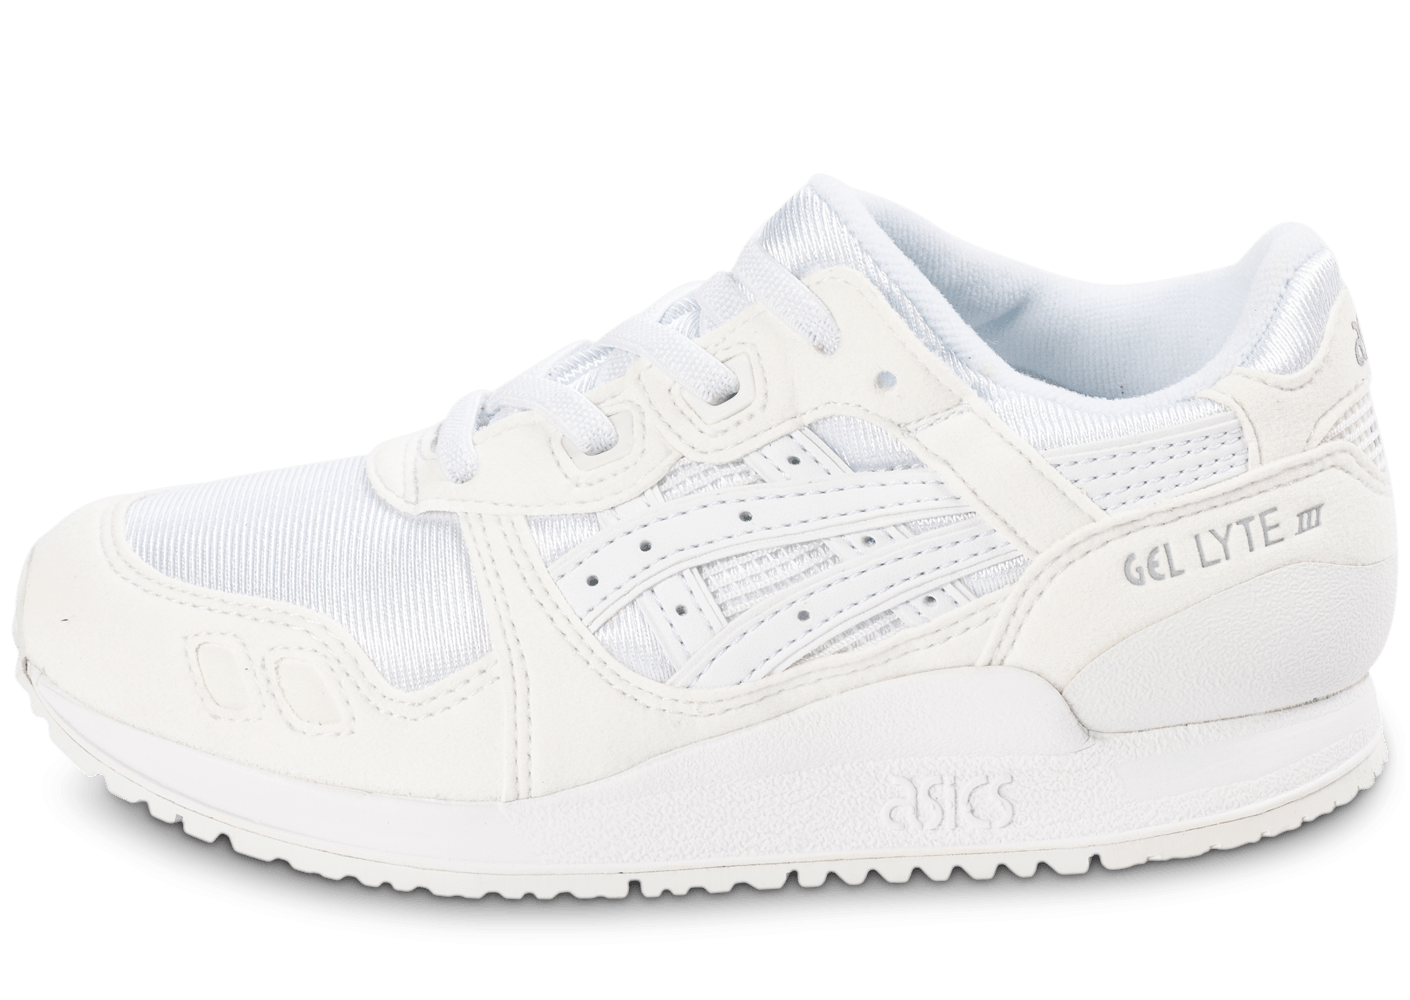 asics gel lyte iii enfant blanche chaussures chaussures chausport. Black Bedroom Furniture Sets. Home Design Ideas